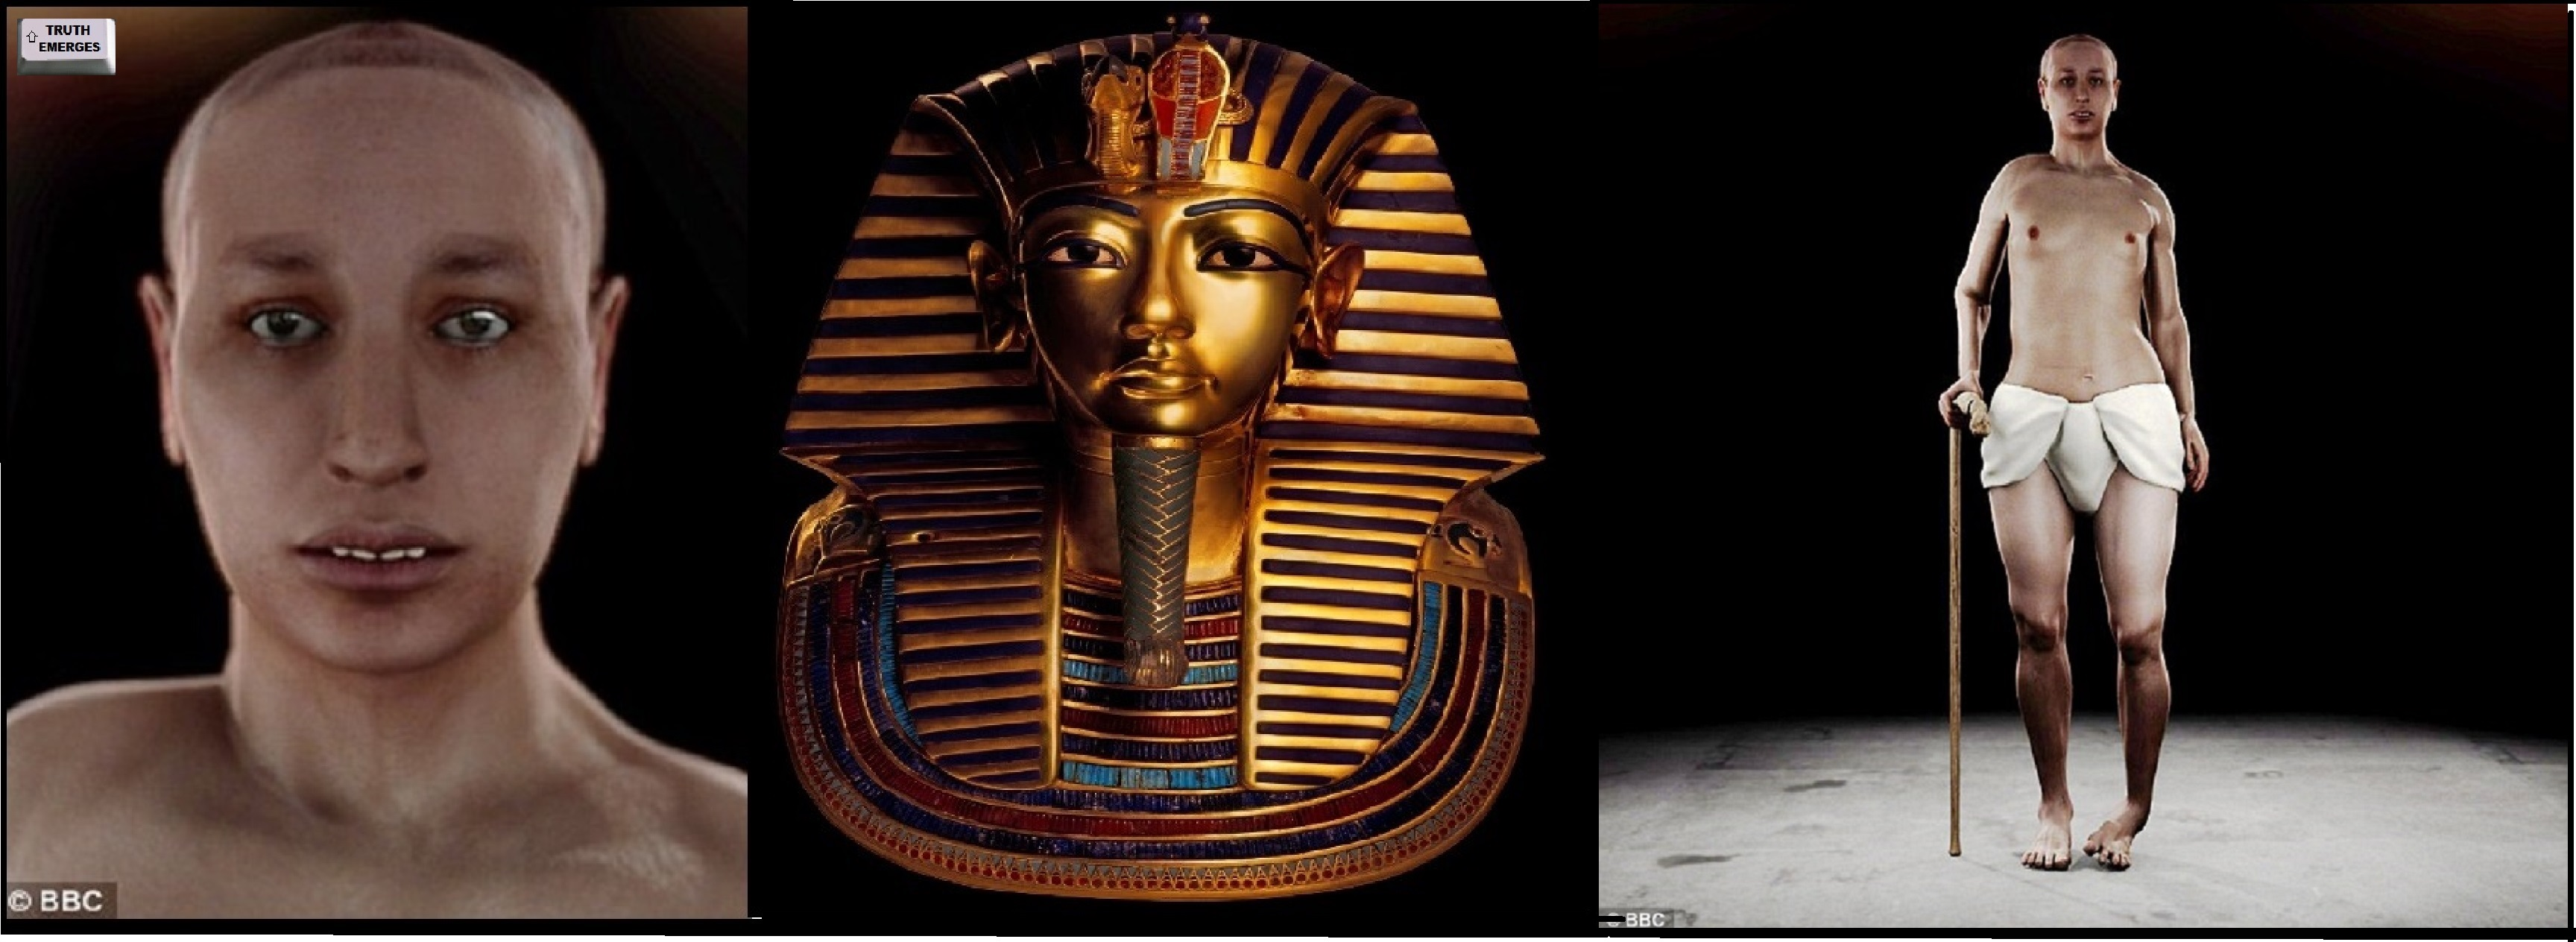 humanities king tut King tut was 'the boy king' he died very young and didn't have all that much influence on egypt he's really most famous for being found with his tomb intact.